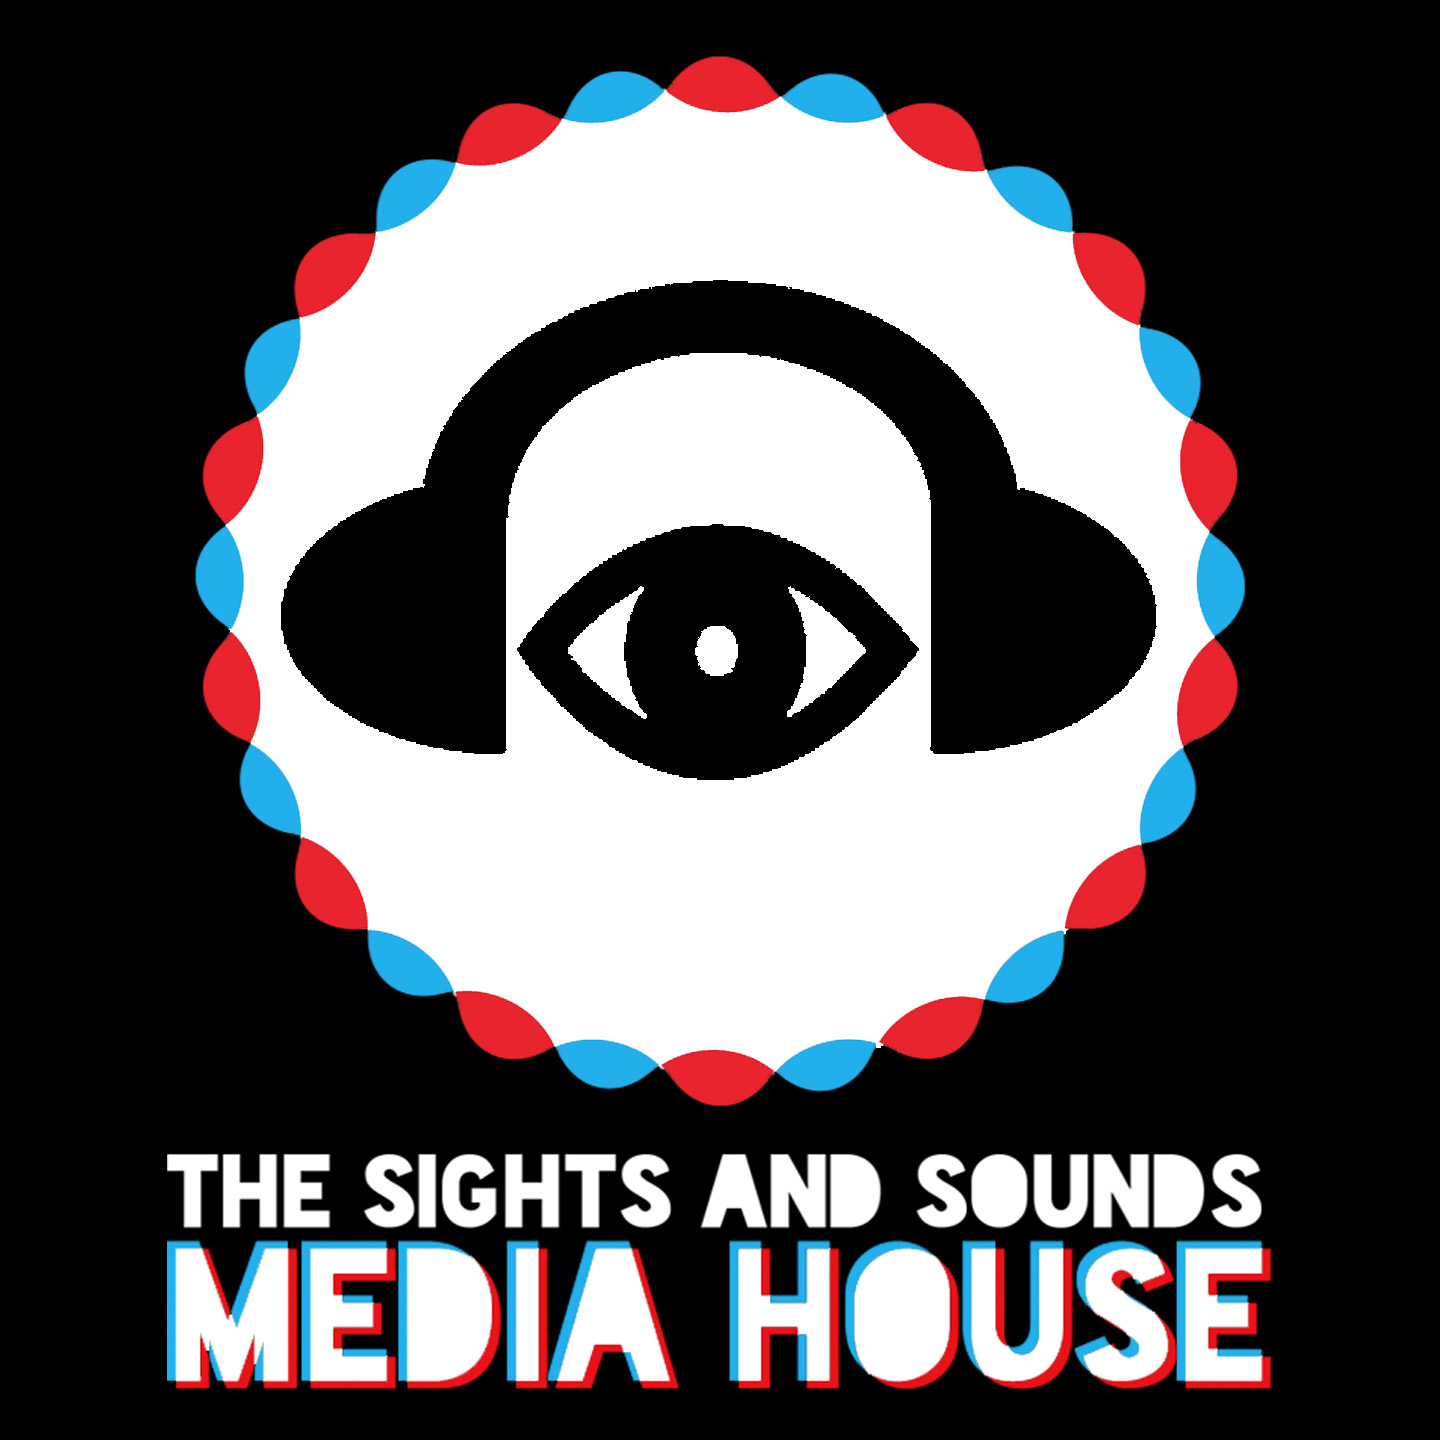 The Sights and Sounds Media House